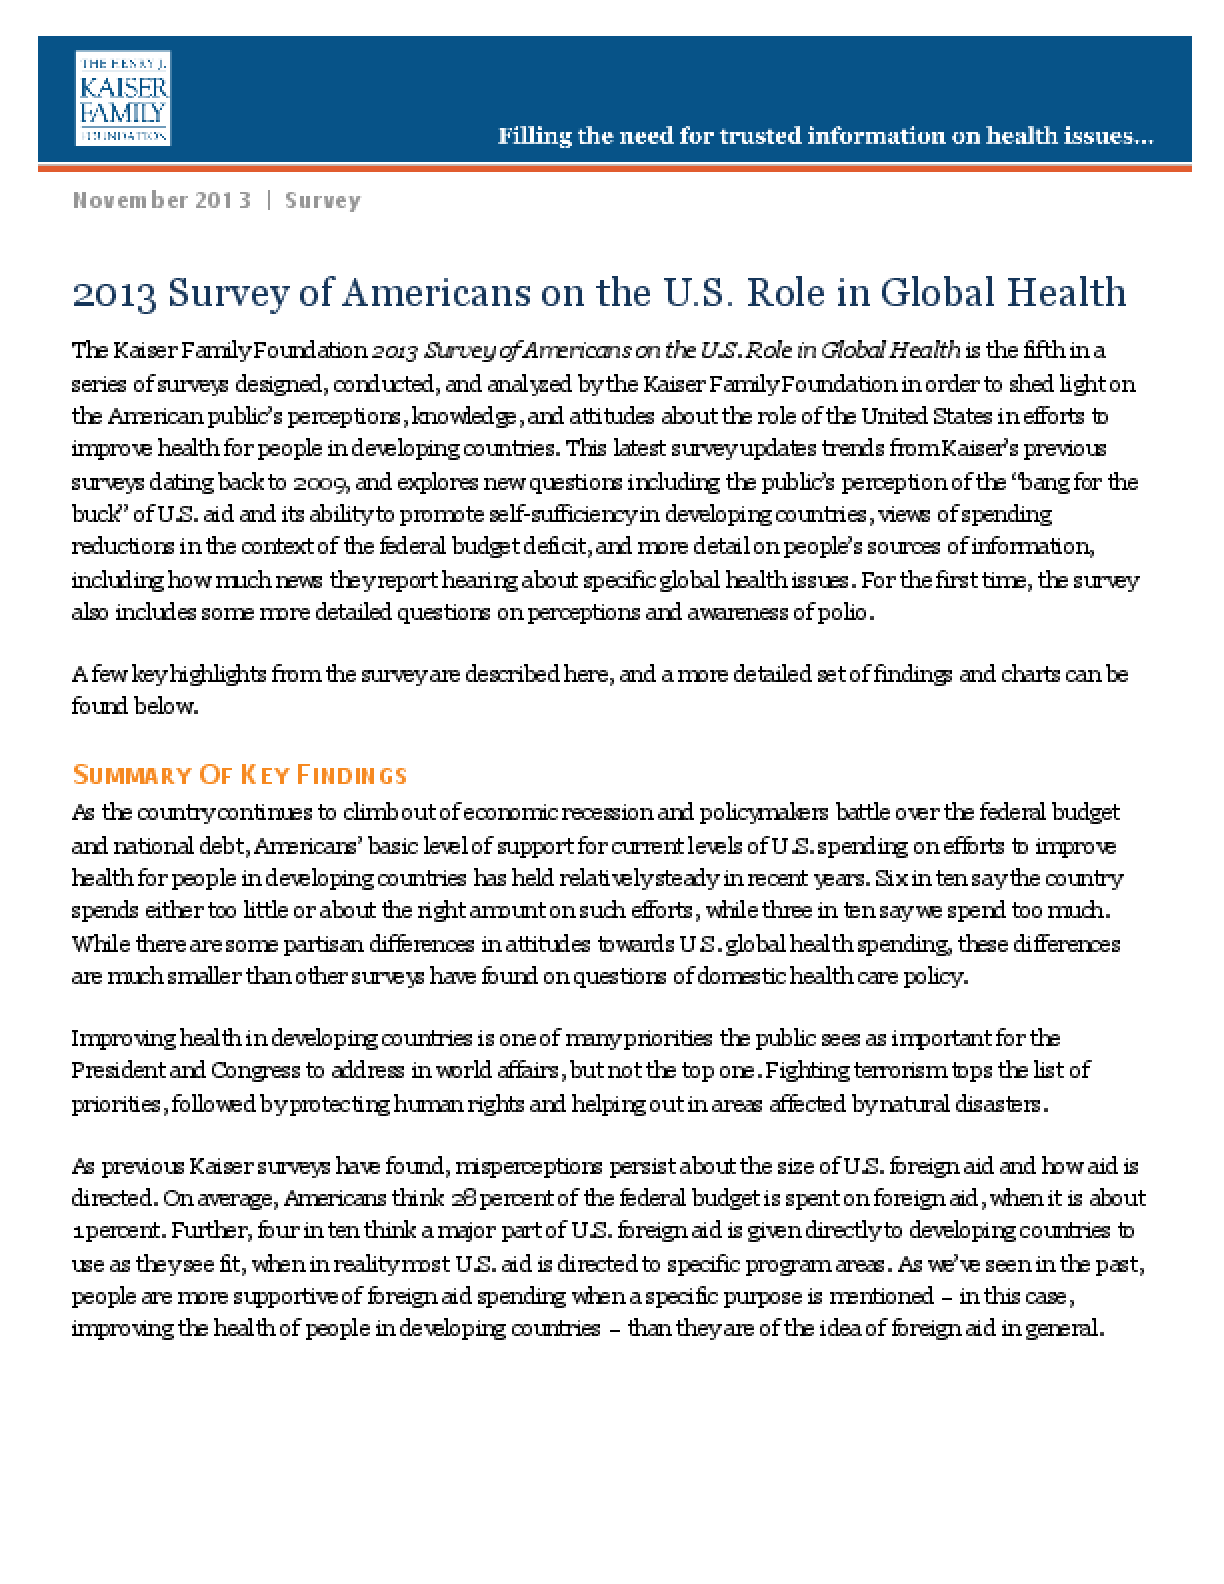 2013 Survey of Americans on the U.S. Role in Global Health